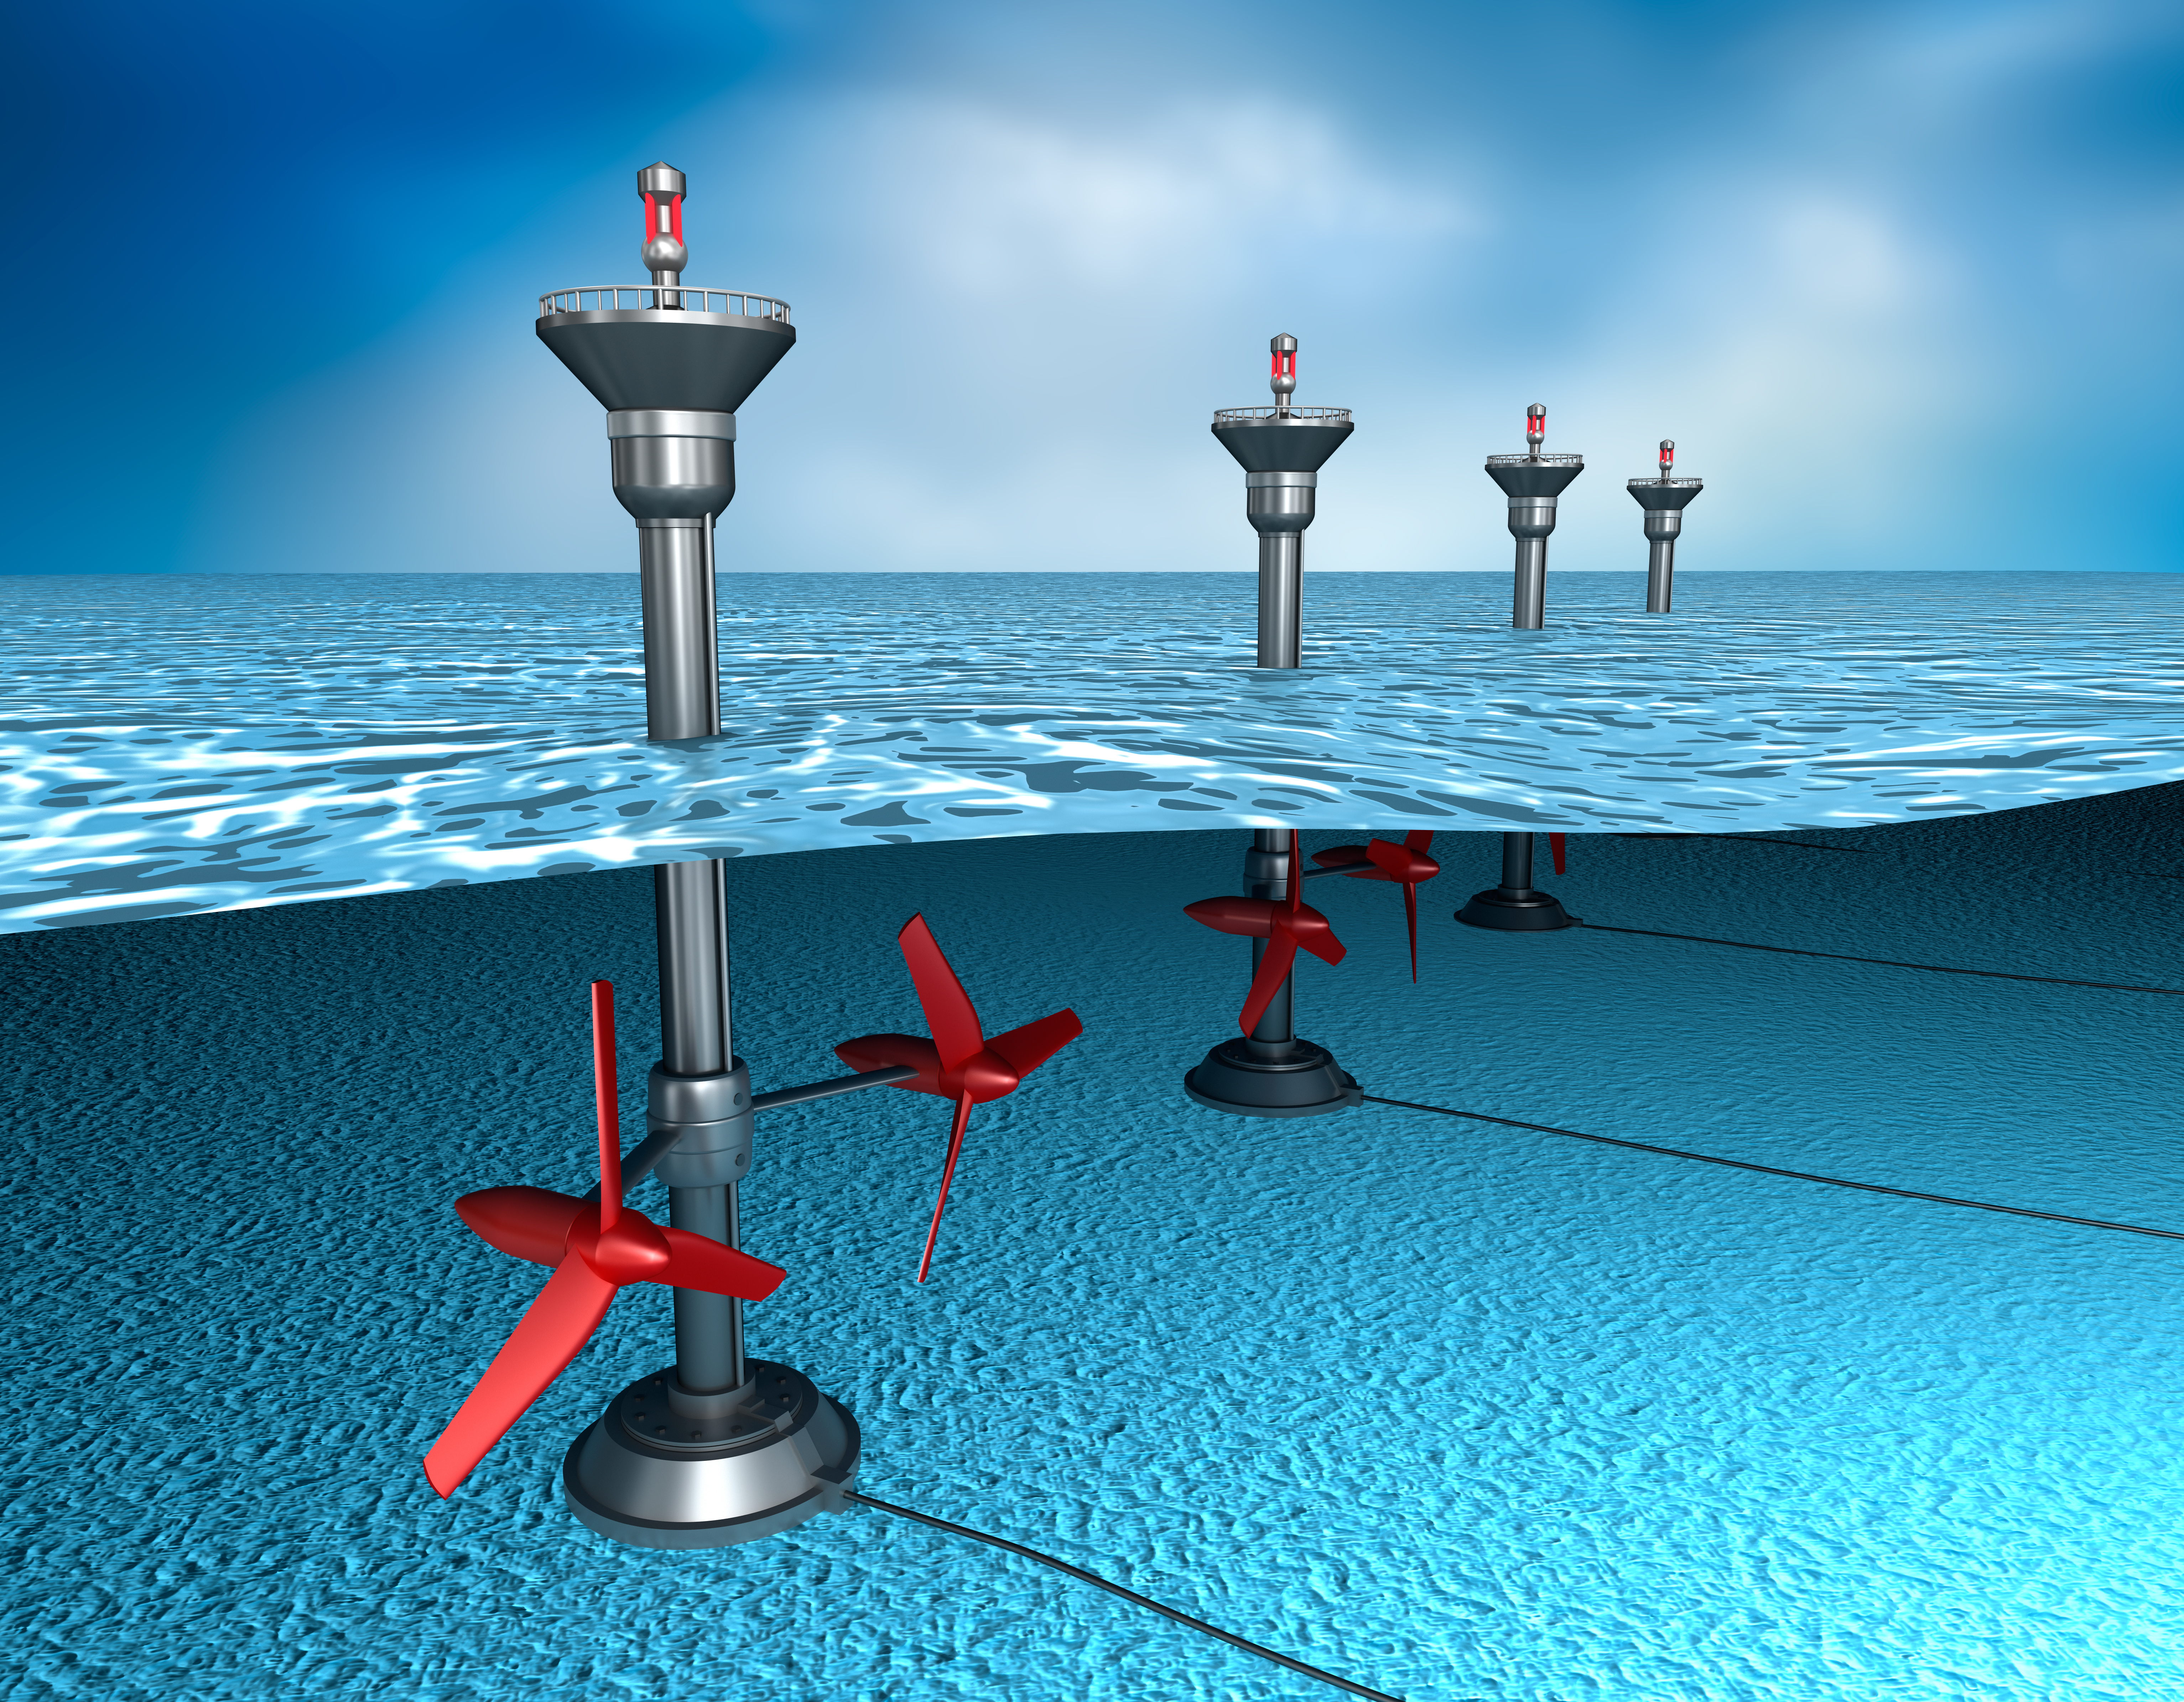 Tidal generators are driven by the flow of water during tidal flow (Adobe Stock)